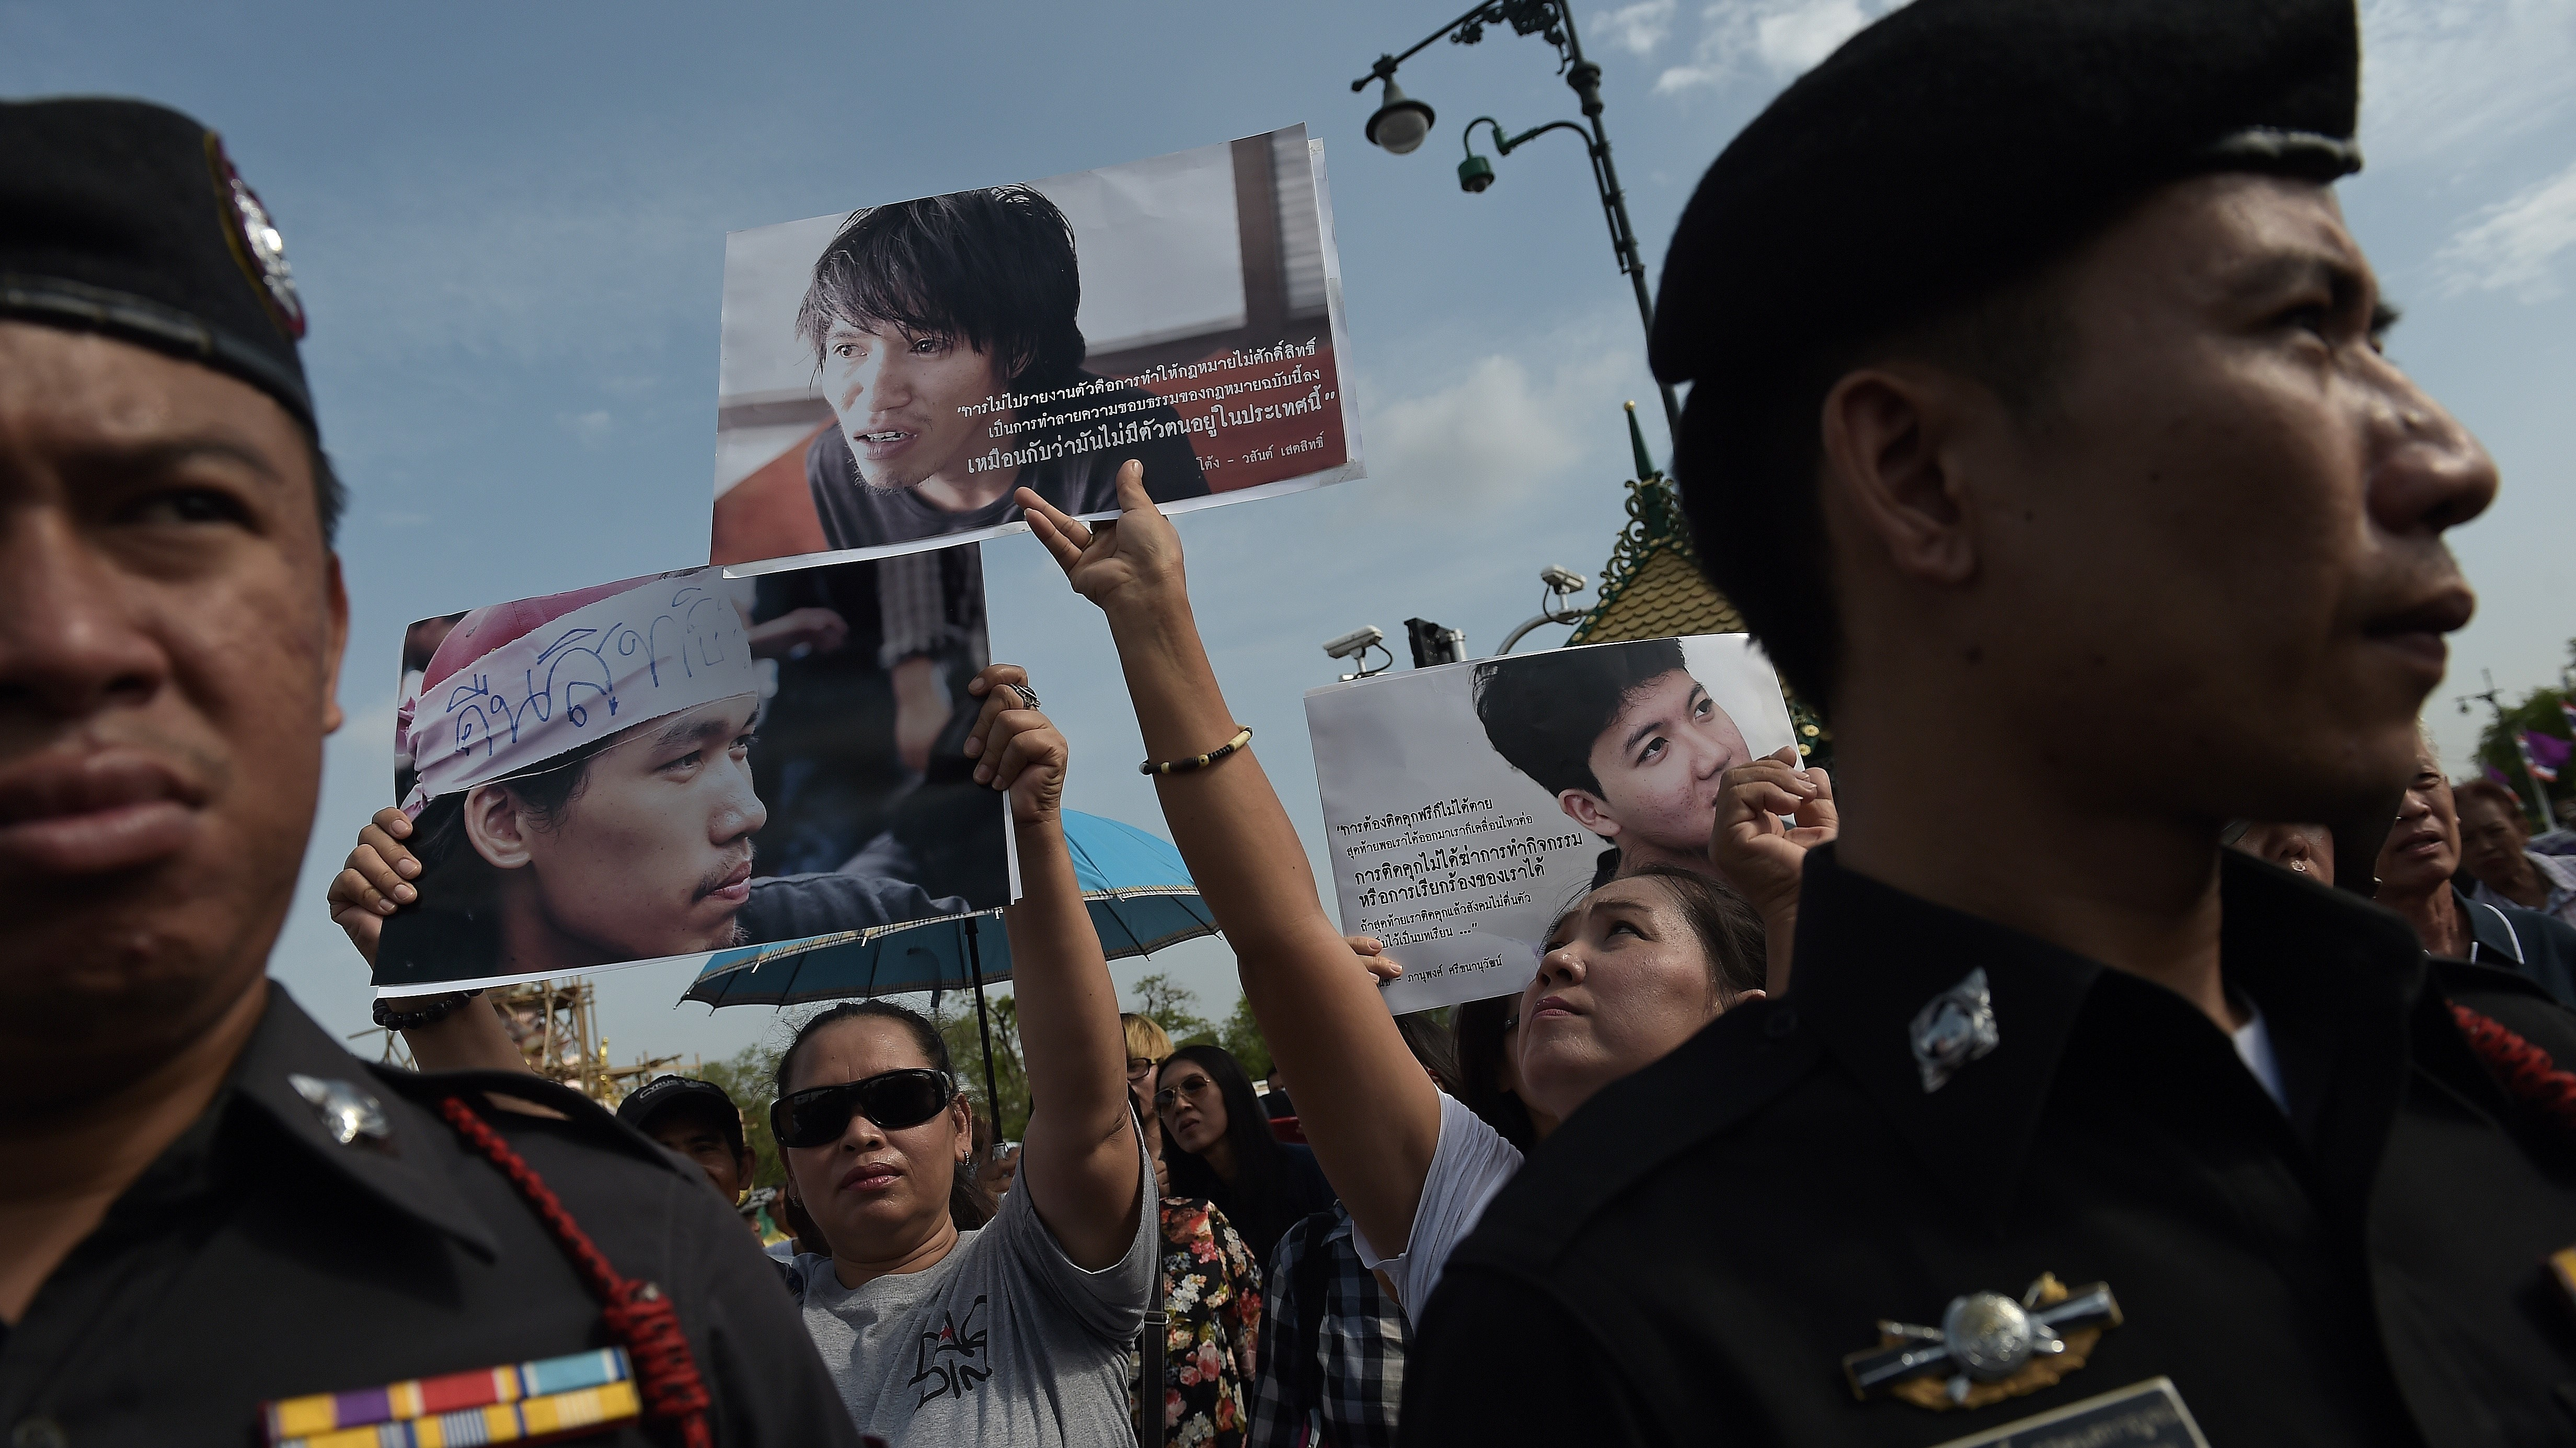 Thai Court Orders Release of Pro-Democracy Activists Who Rallied Against the Junta